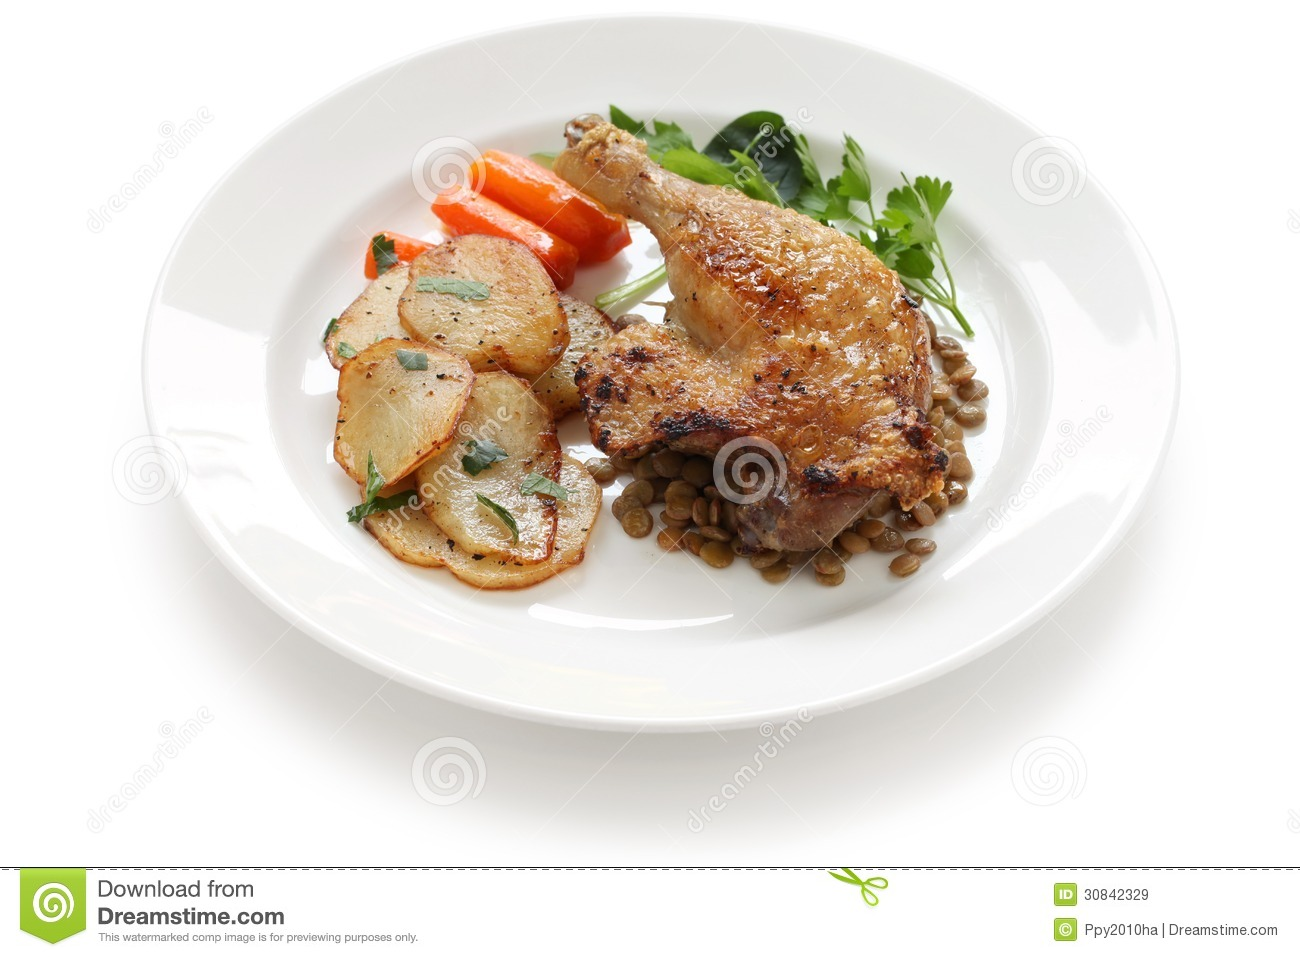 Andconfit